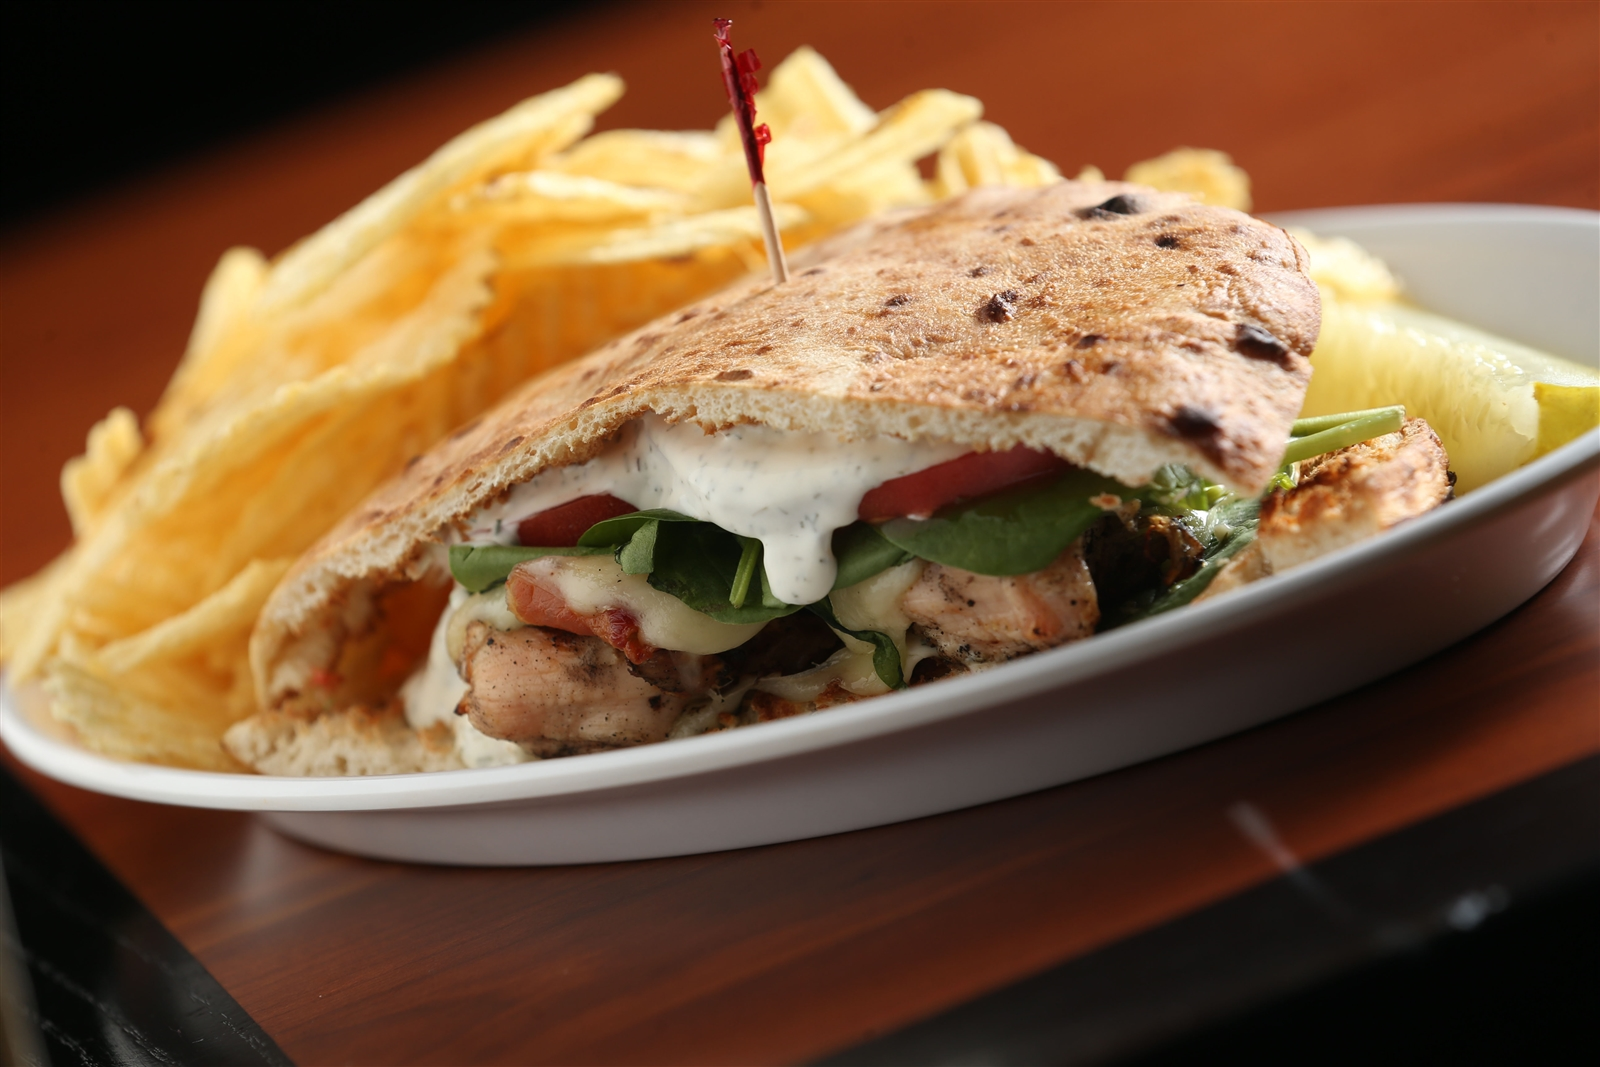 Looking for something more adventurous? Rock Bottom's H.H.S. Hooligan House Special is a chargrilled chicken breast with bacon, melted provolone, fresh spinach, tomato and homemade dill dressing served on fresh pita bread.